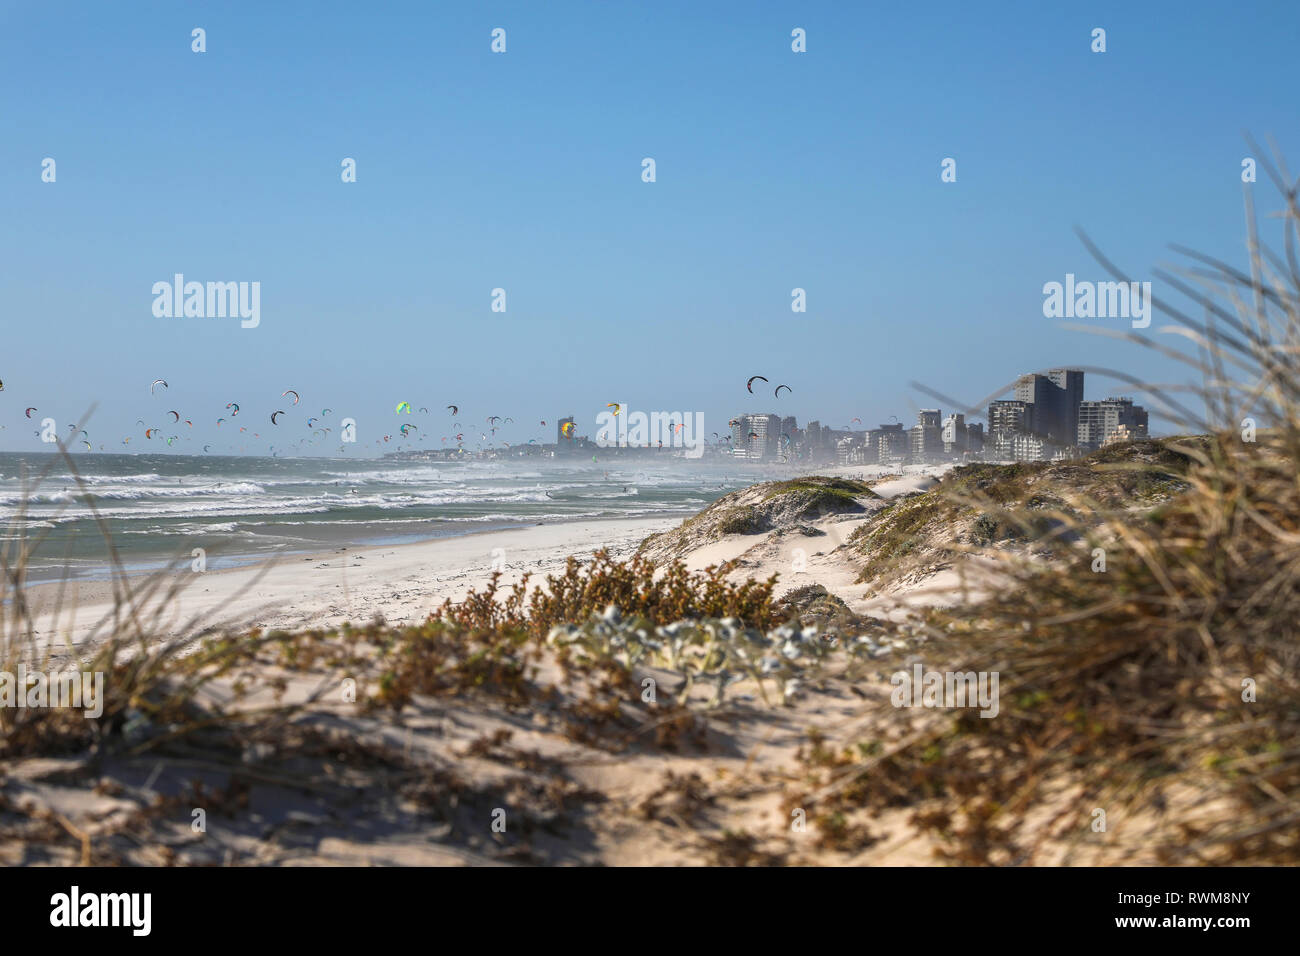 Large group of distant kite surfers mid air over sea, Cape Town, Western Cape, South Africa - Stock Image